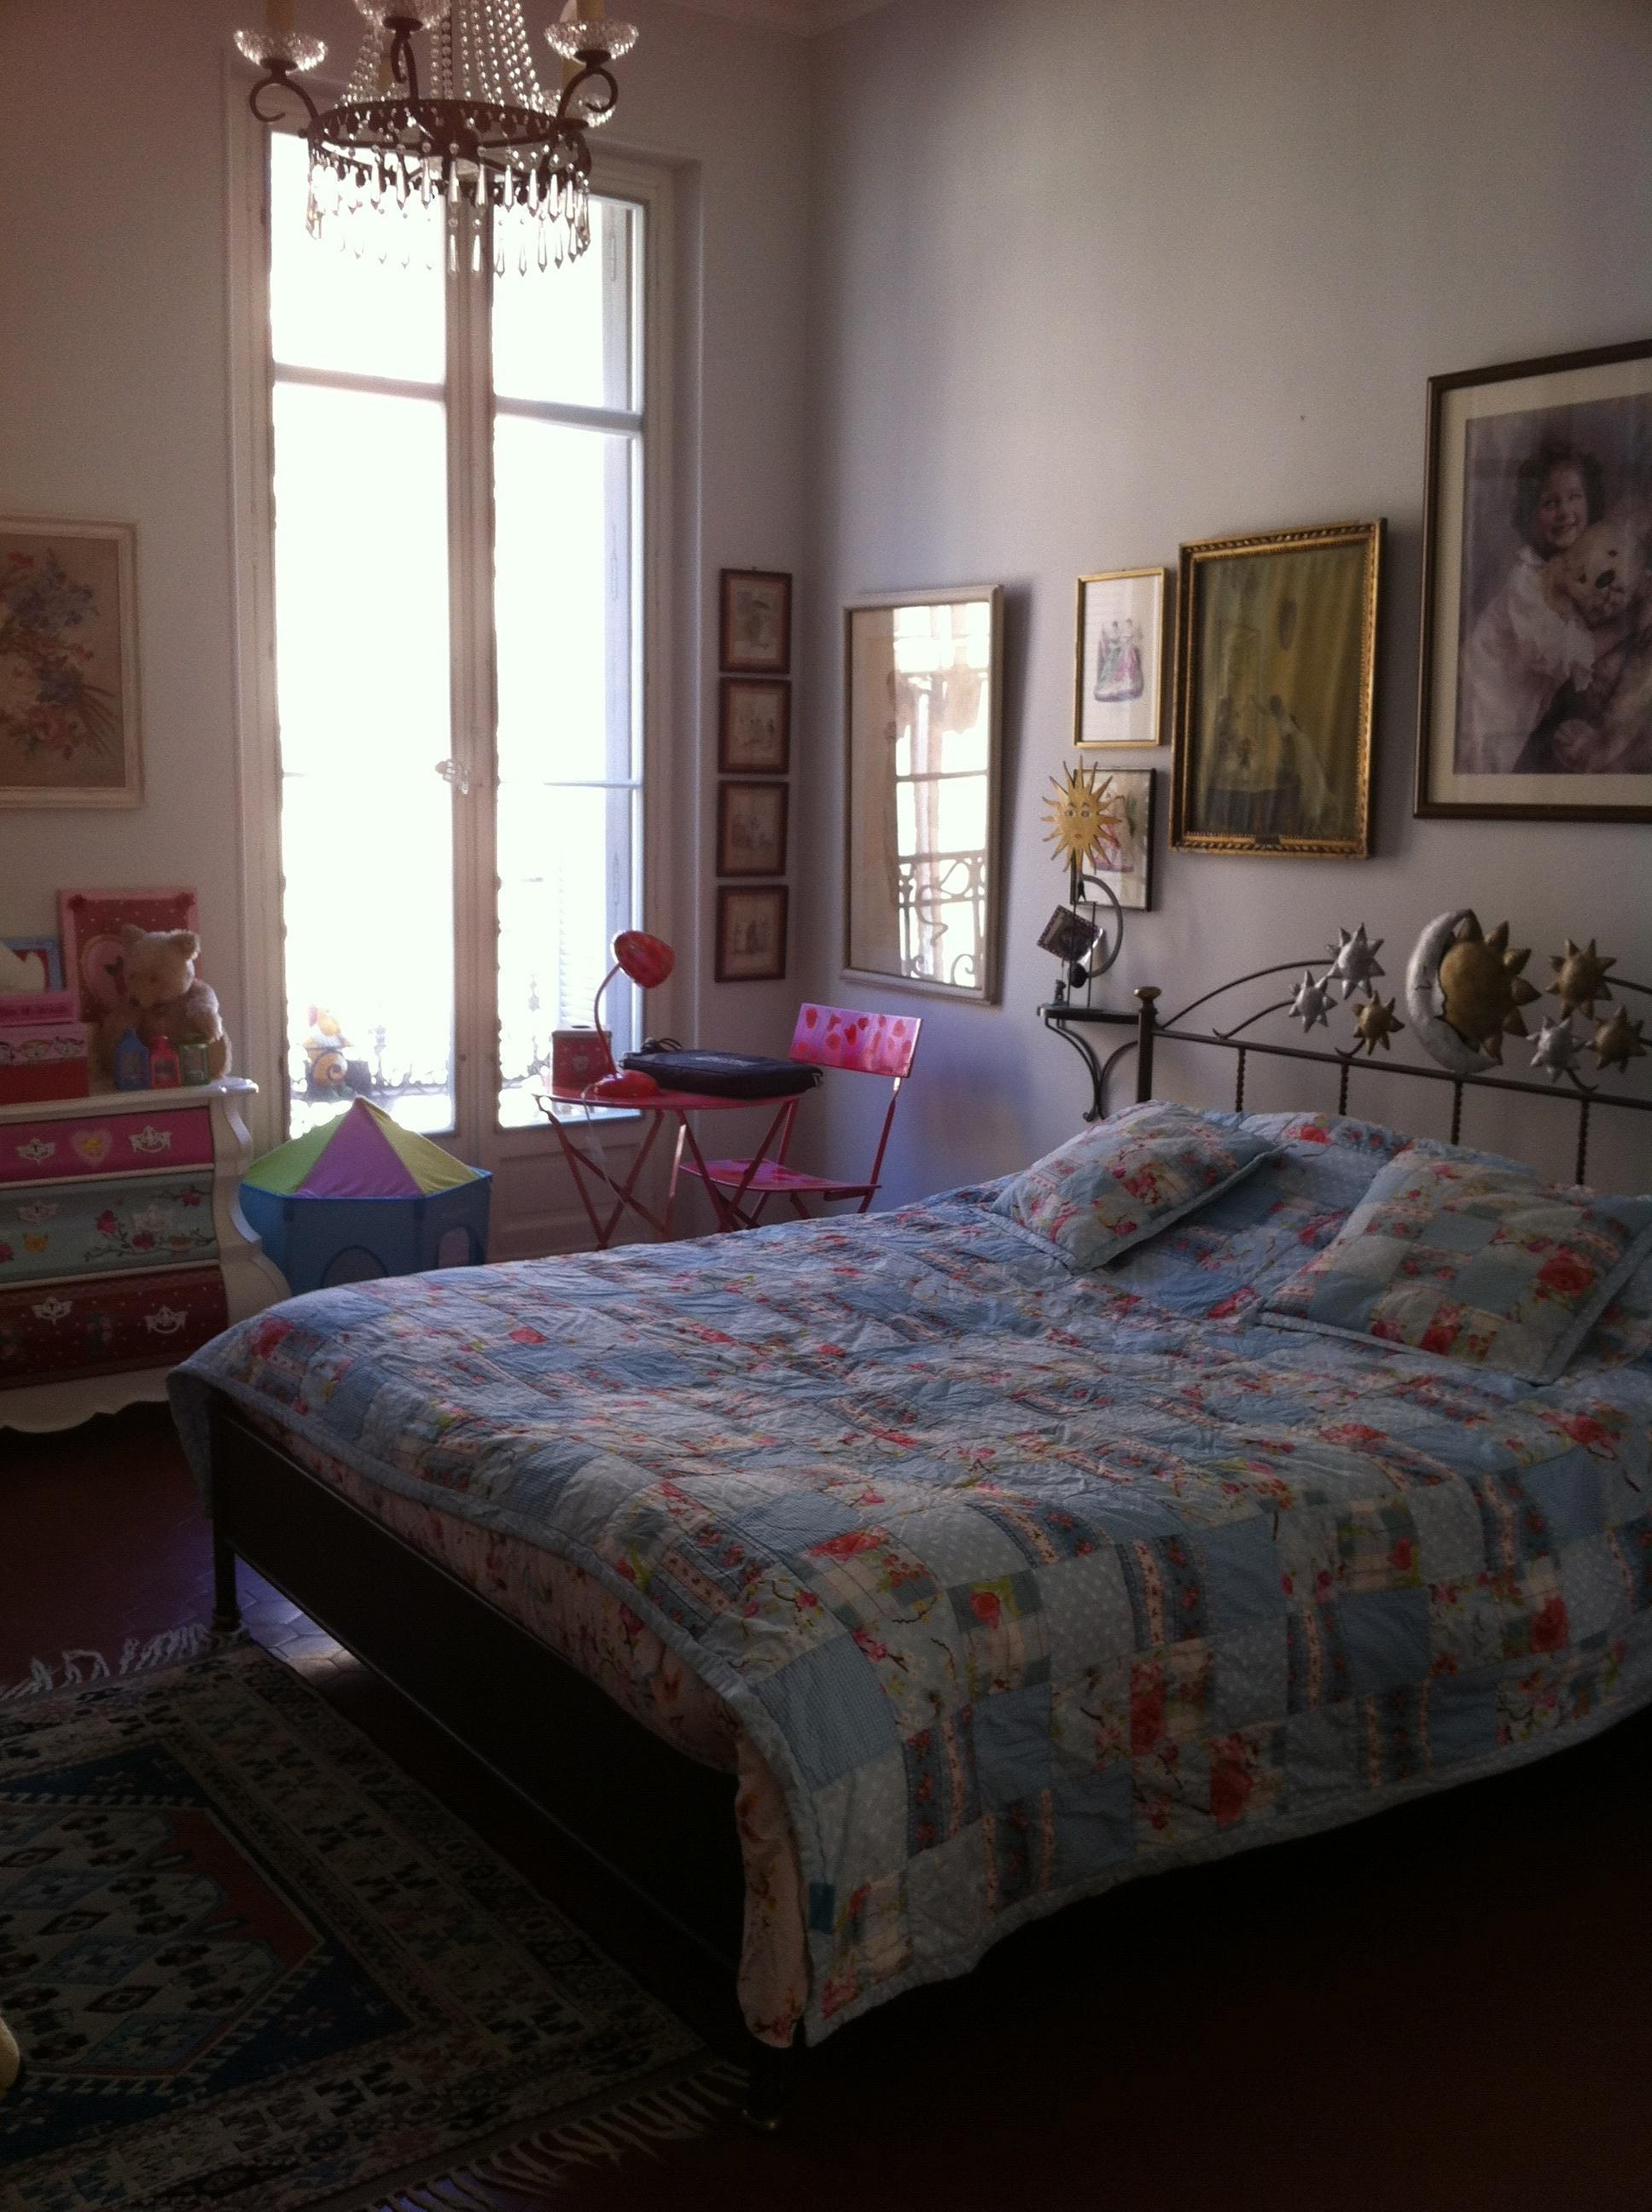 Furnished Room From 25 M² - Castellane